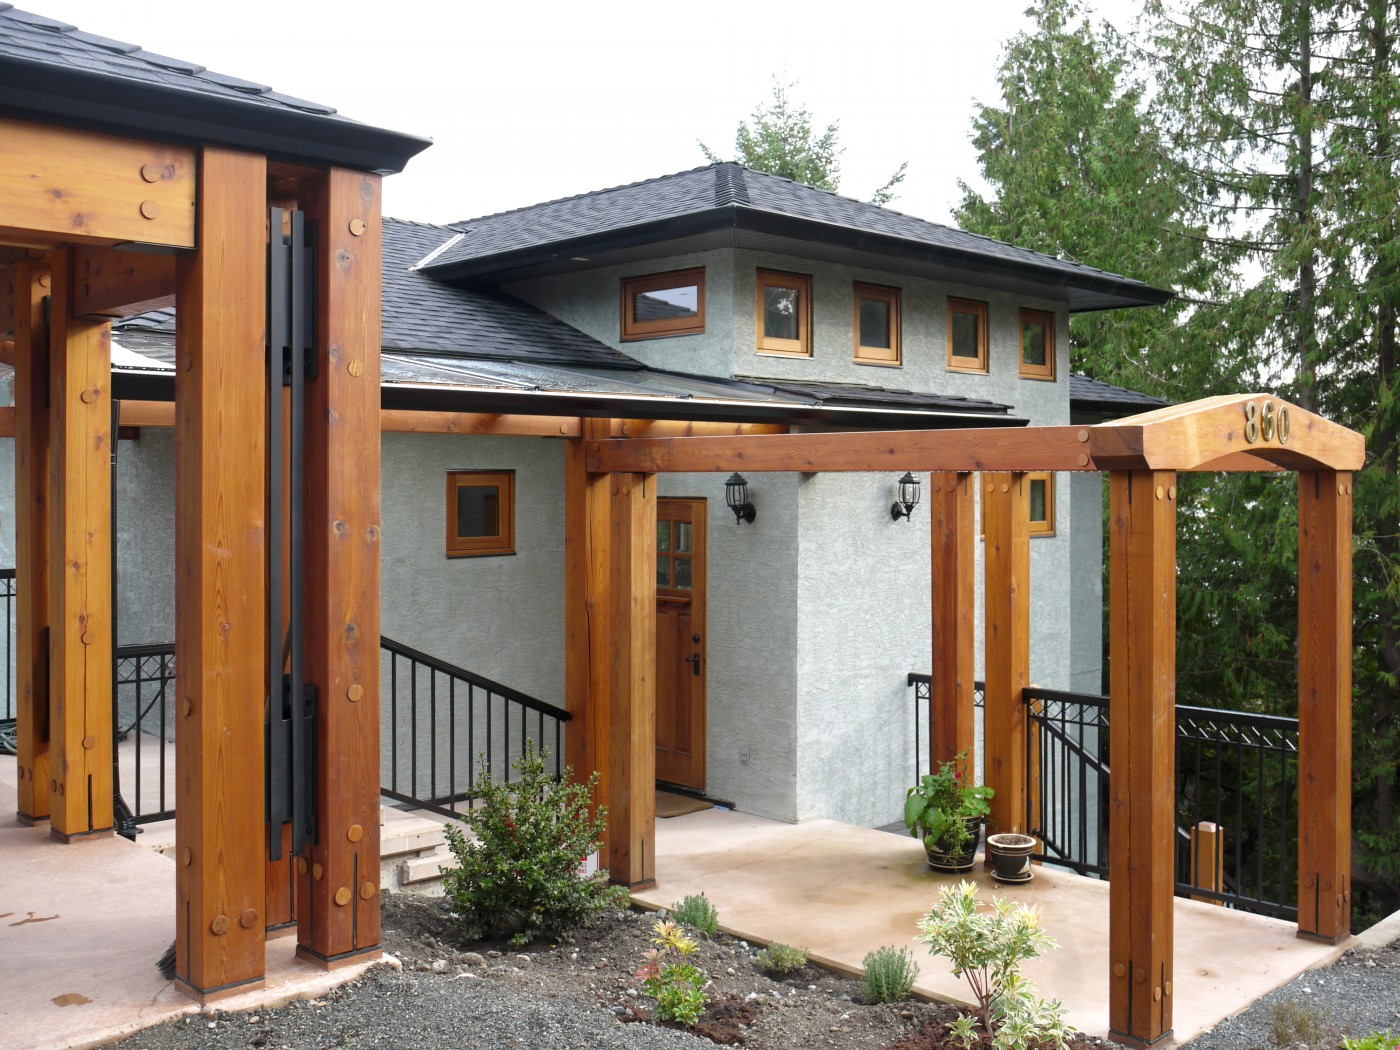 beams in the exterior design